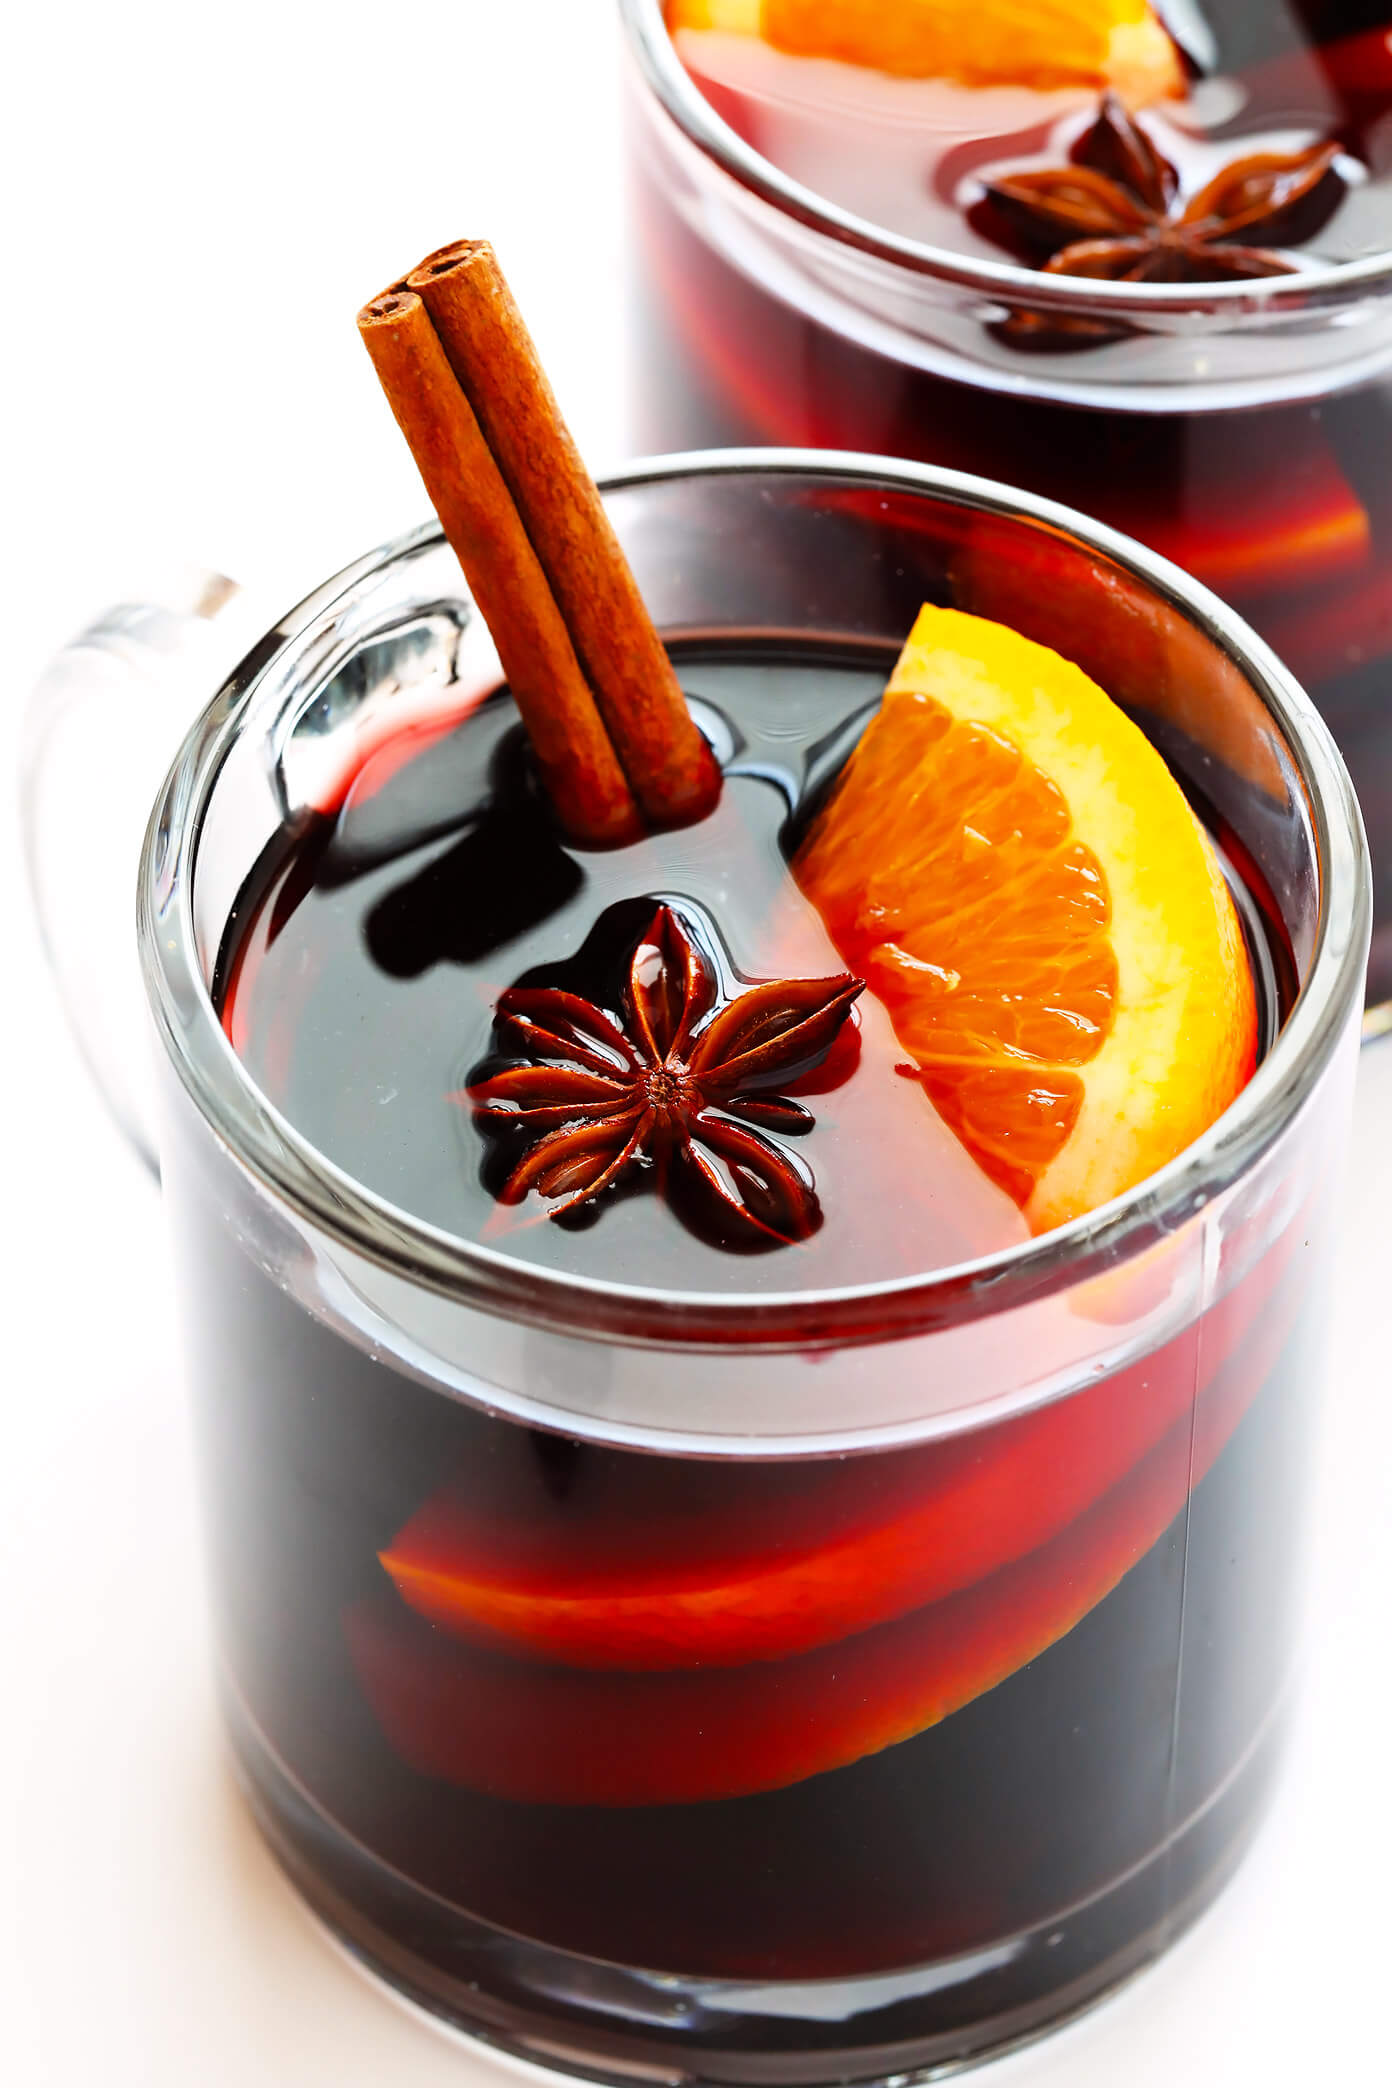 This is the BEST Mulled Wine recipe! It's easy to make on the stovetop or in the slow cooker, it's lightly sweetened and simmered with cinnamon, spices and orange, and it's the perfect drink to warm you up in the wintertime. Perfect for holiday entertaining and more!